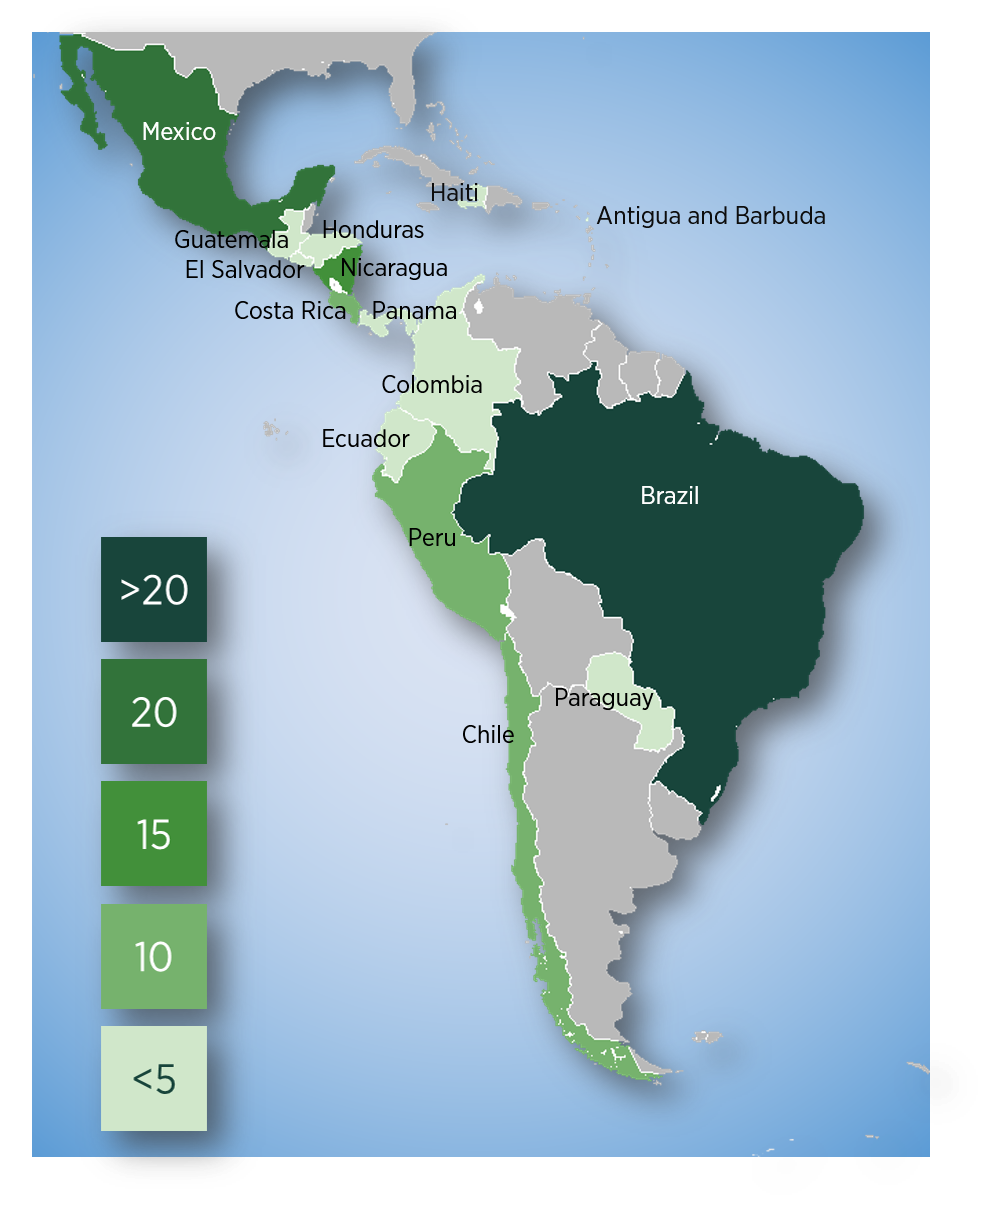 MSU Projects in Latin America: More than 20 projects: Brazil. 15 to 20 projects: Mexico. 10 to 15 projects: Nicaragua. 5 to 10 projects: Chile; Costa Rica; Peru. Less than 5 projects: Antigua and Barbuda; Colombia; Ecuador; El Salvador; Guatemala; Haiti; Honduras; Panama; Paraguay